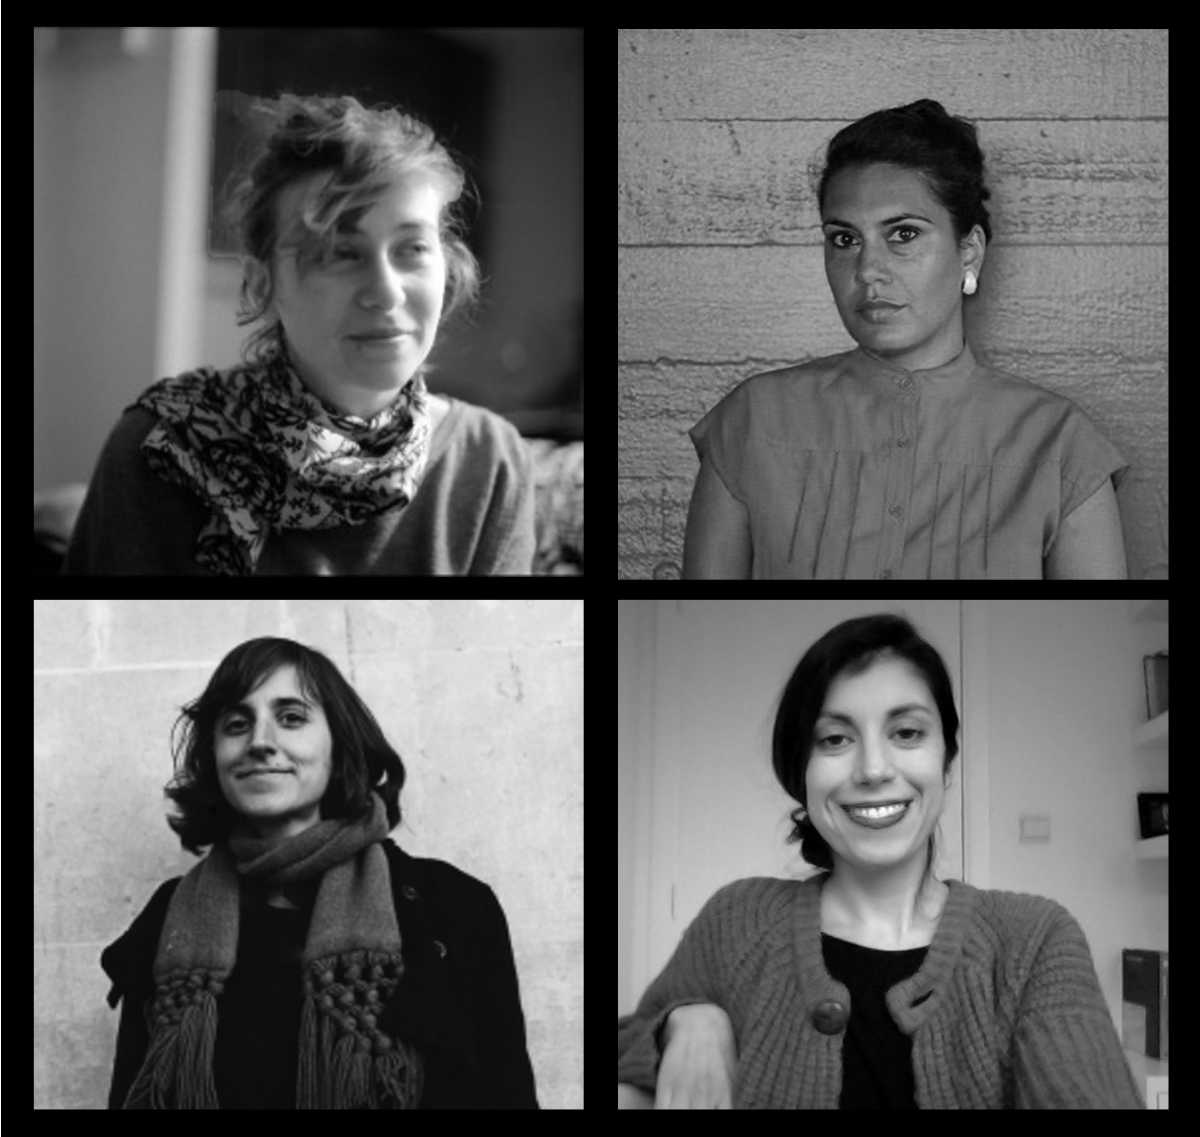 Image: Portraits of Giulia Damiani, Chandra Frank, Elize Mazadiego and Ros Murray (clockwise from top left).